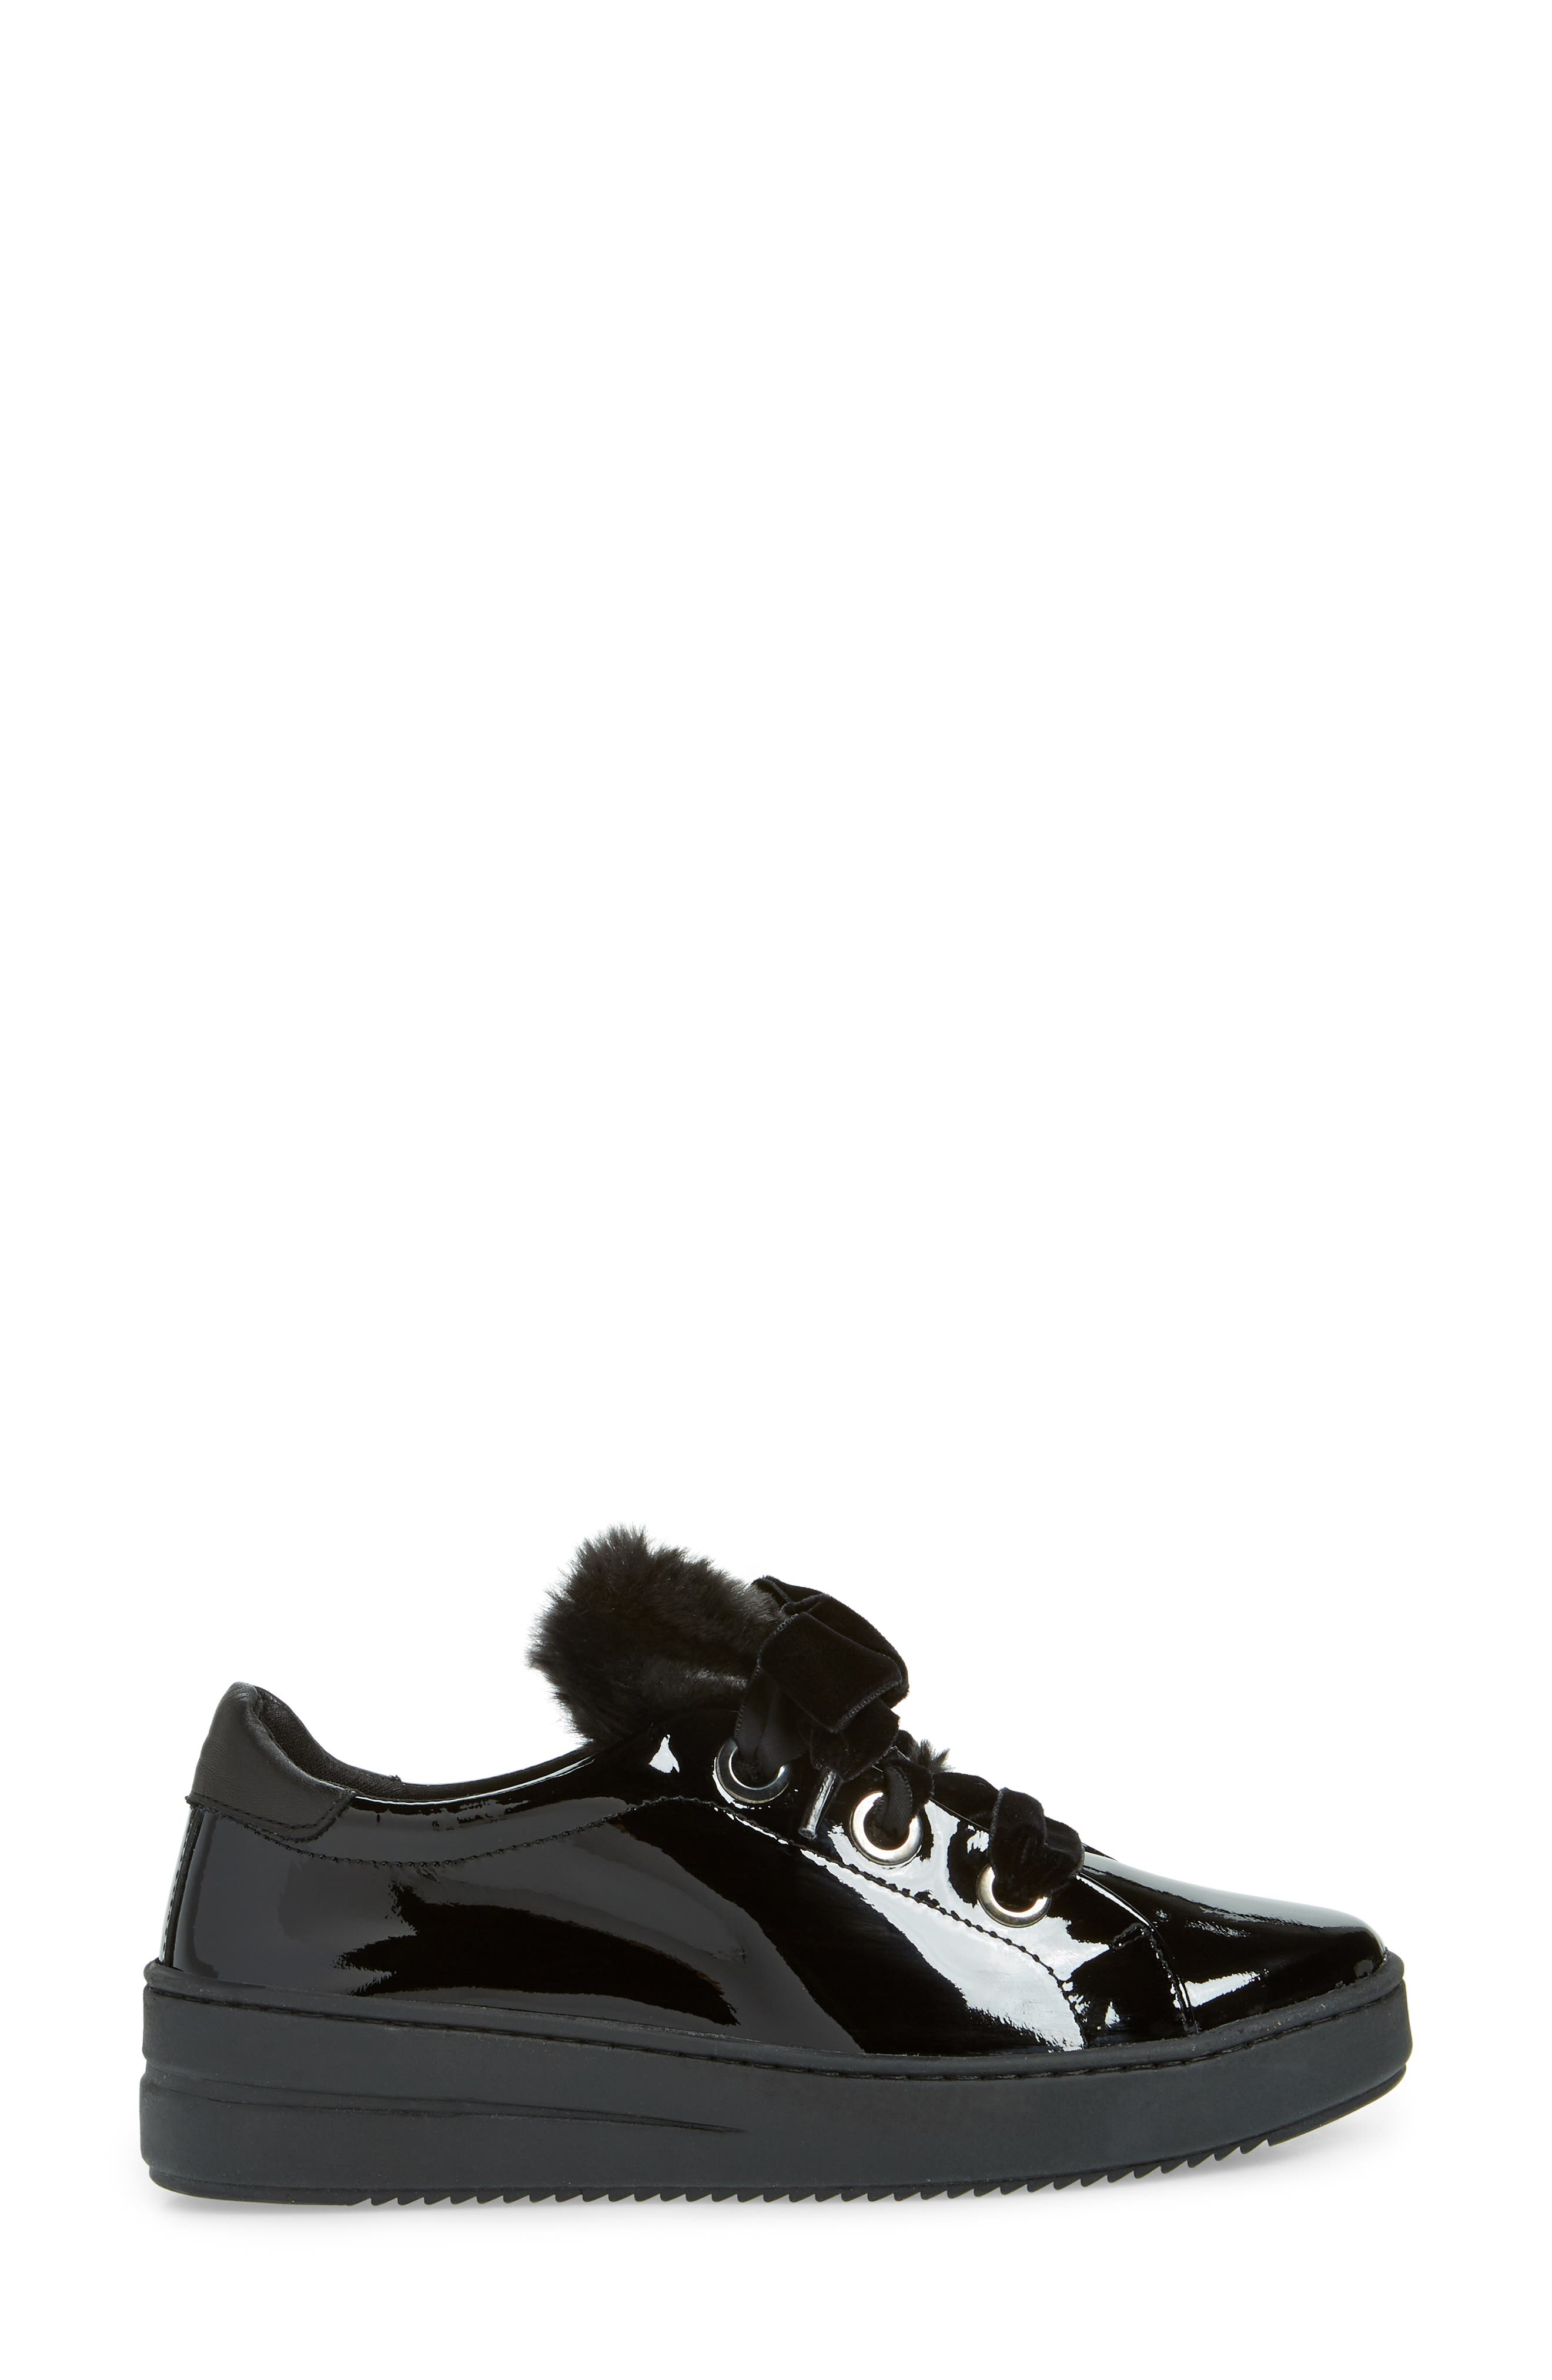 Groove Faux-Shearling Trim Sneaker,                             Alternate thumbnail 3, color,                             BLACK PATENT LEATHER